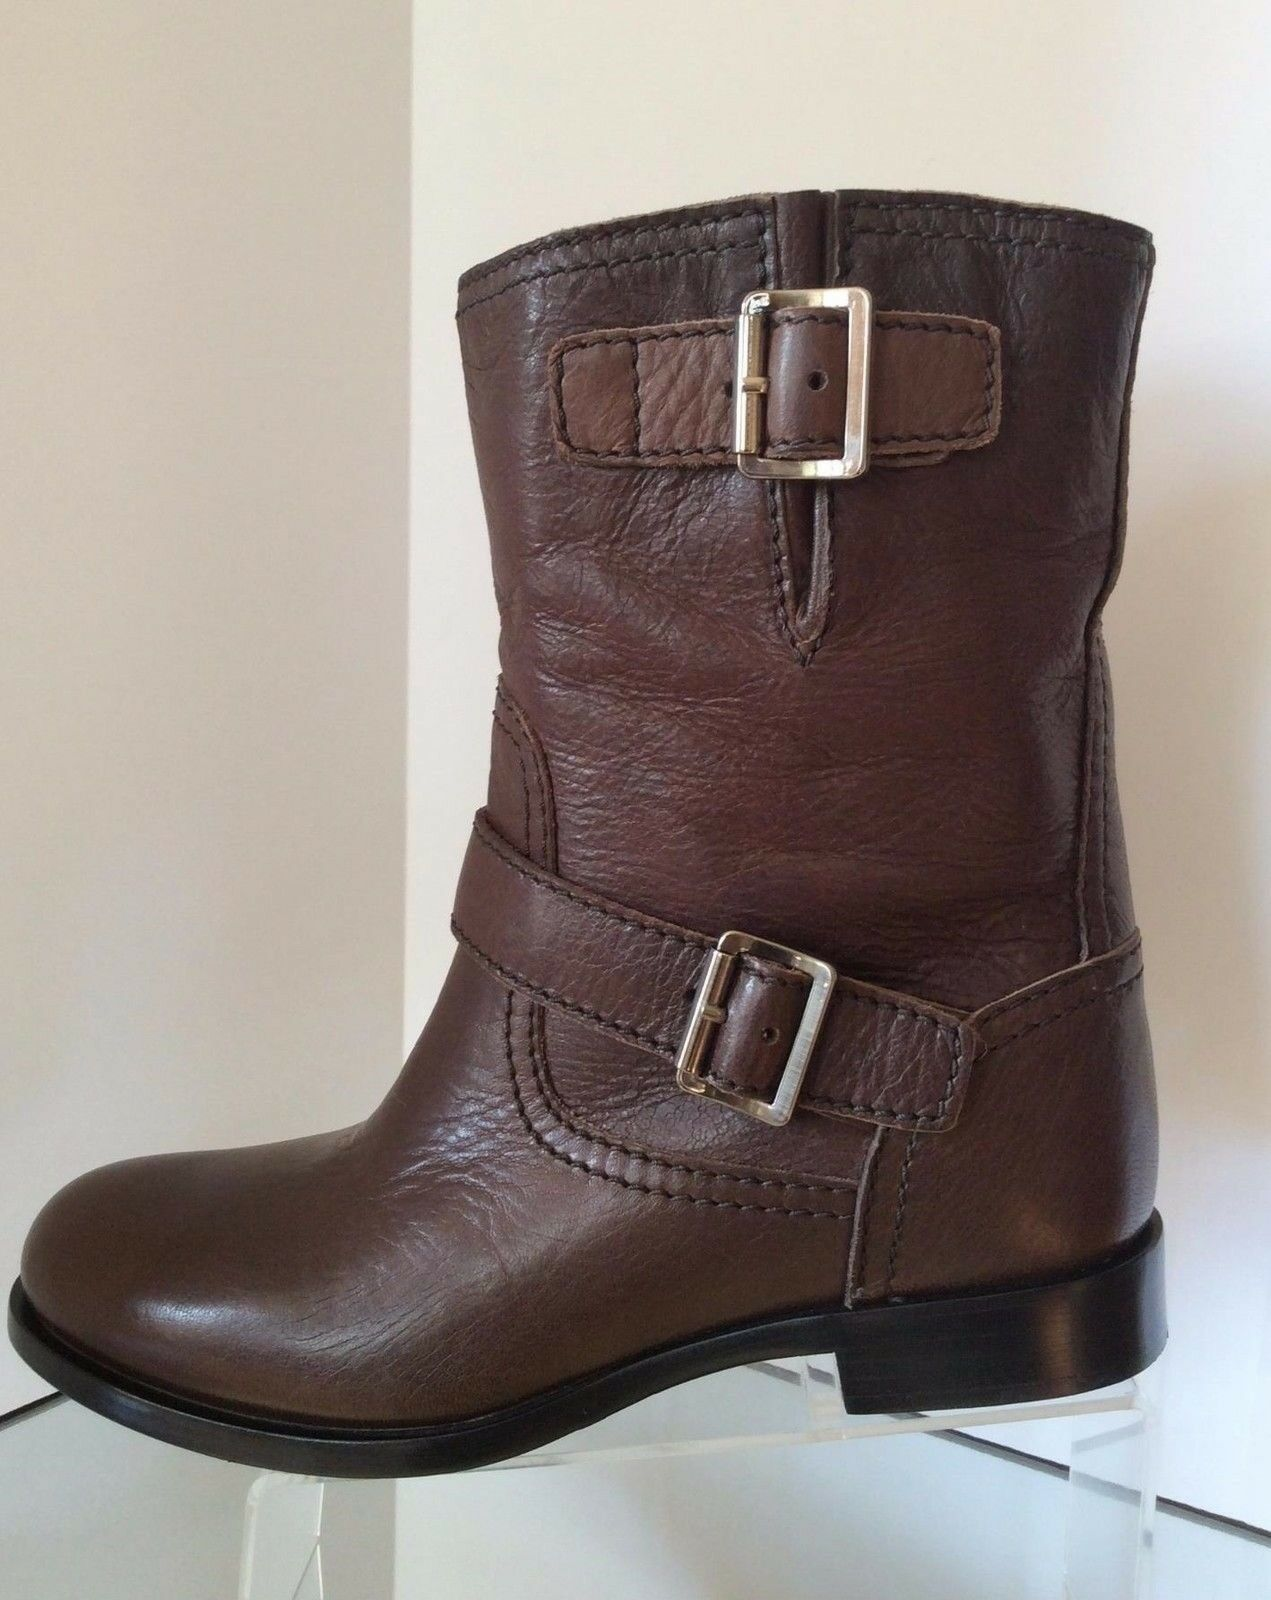 NEW PRADA Double Buckle Moto Boots, Brown (Size 38) - MSRP  995.00